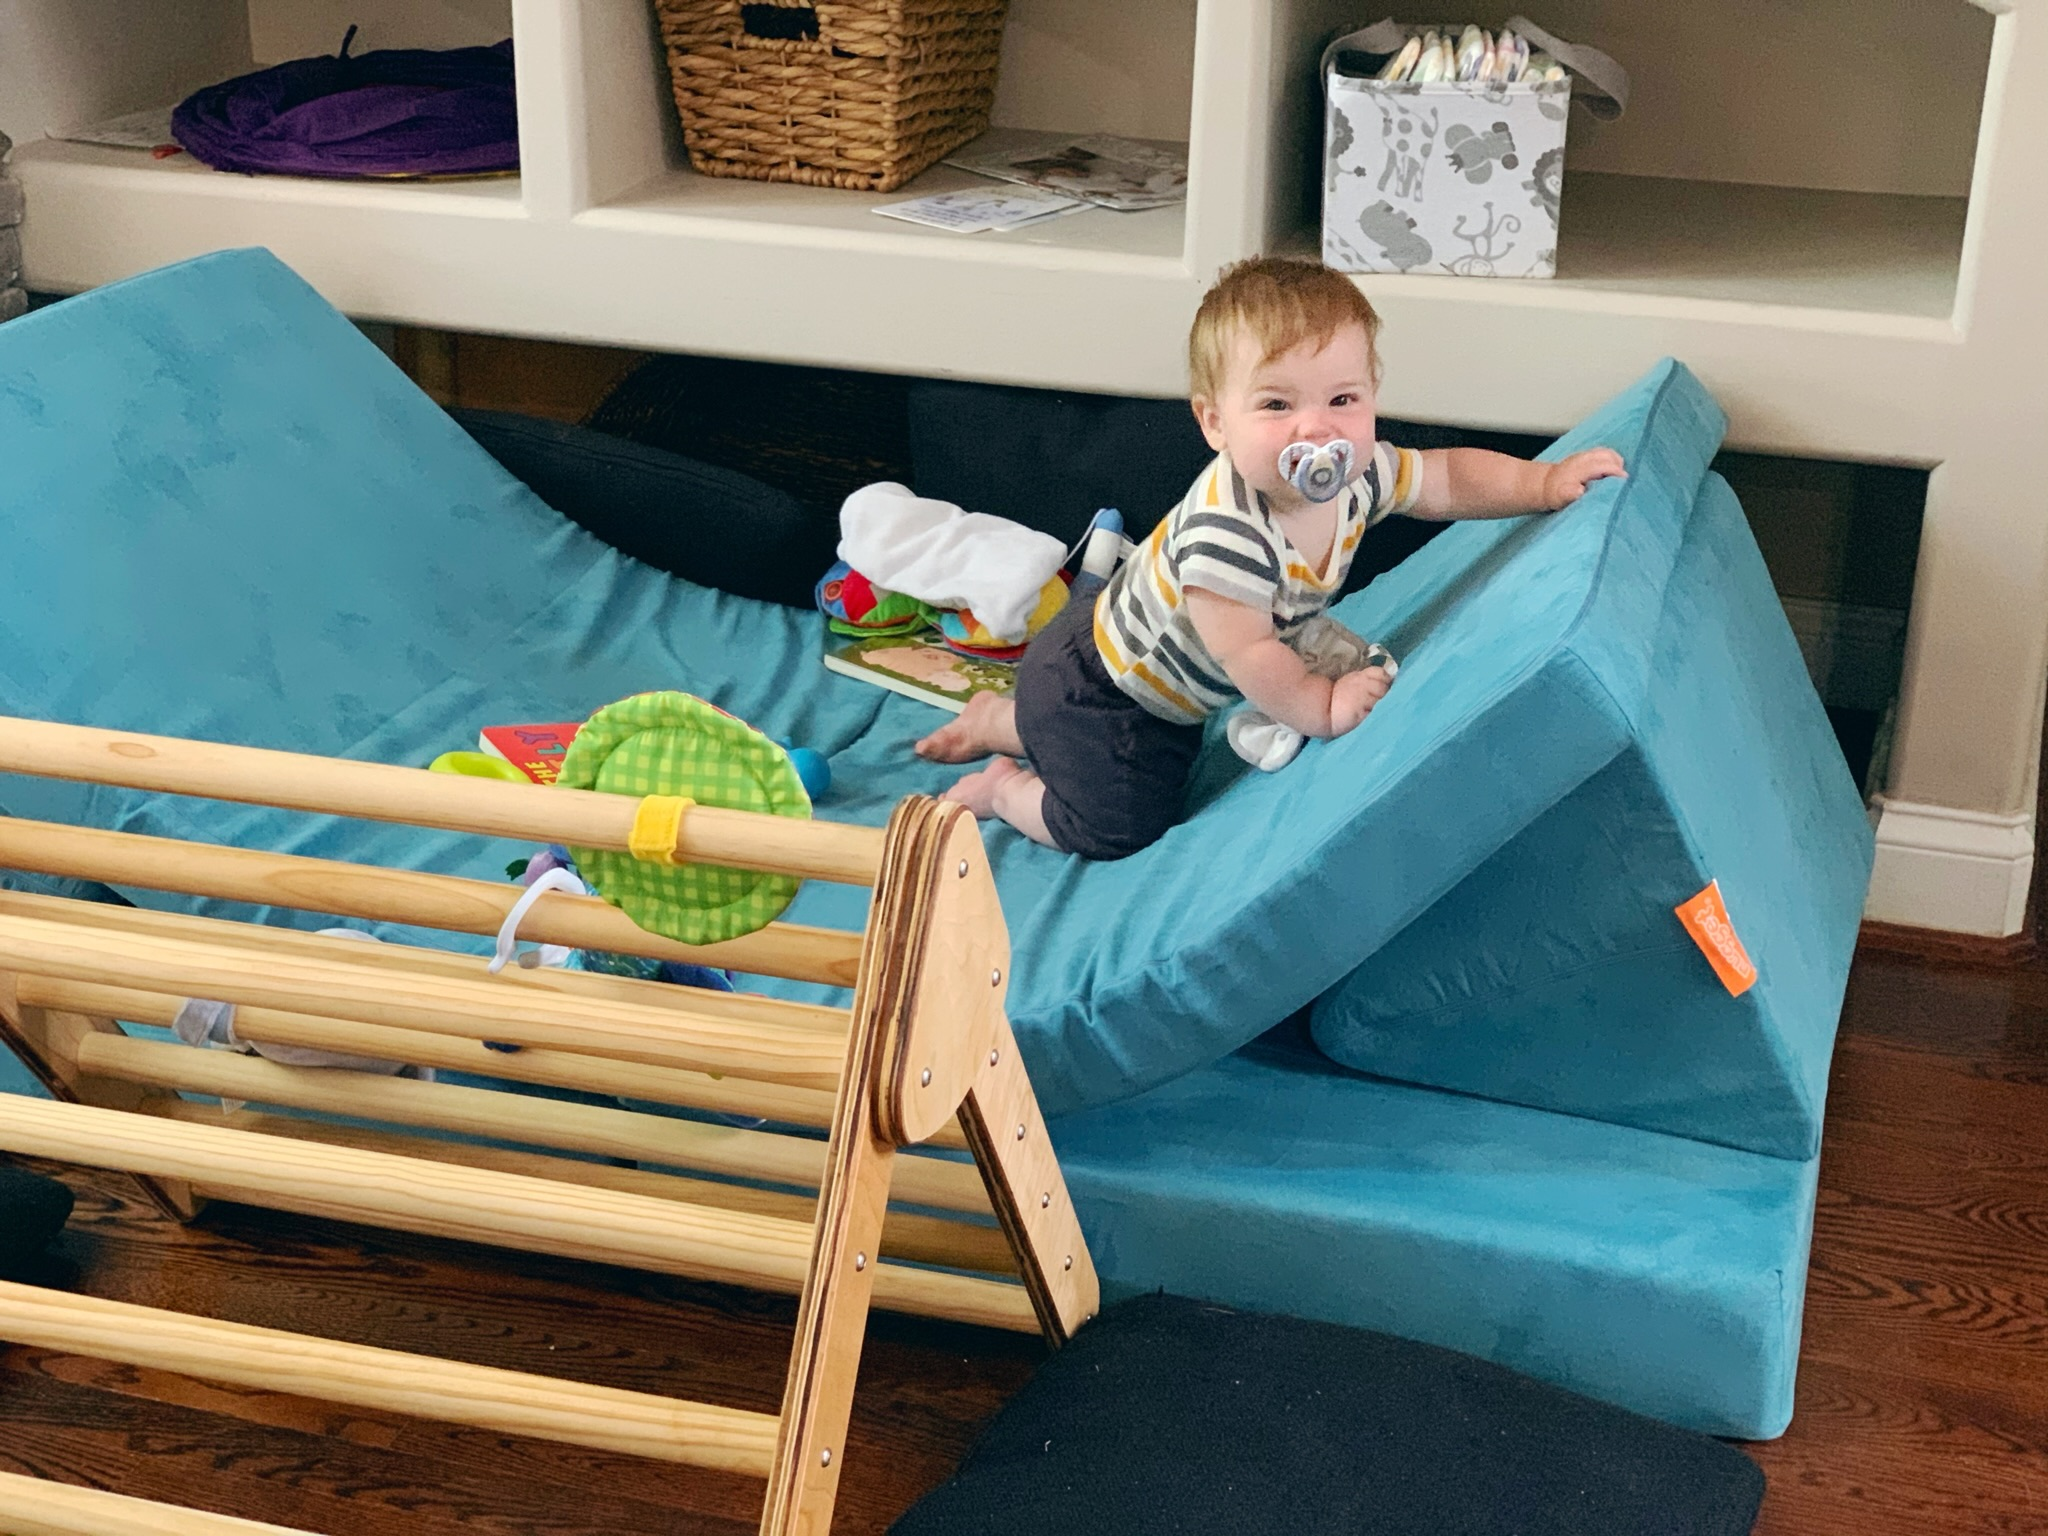 Nuggets: Part-Furniture, Part-Toy - We are Mom Friends